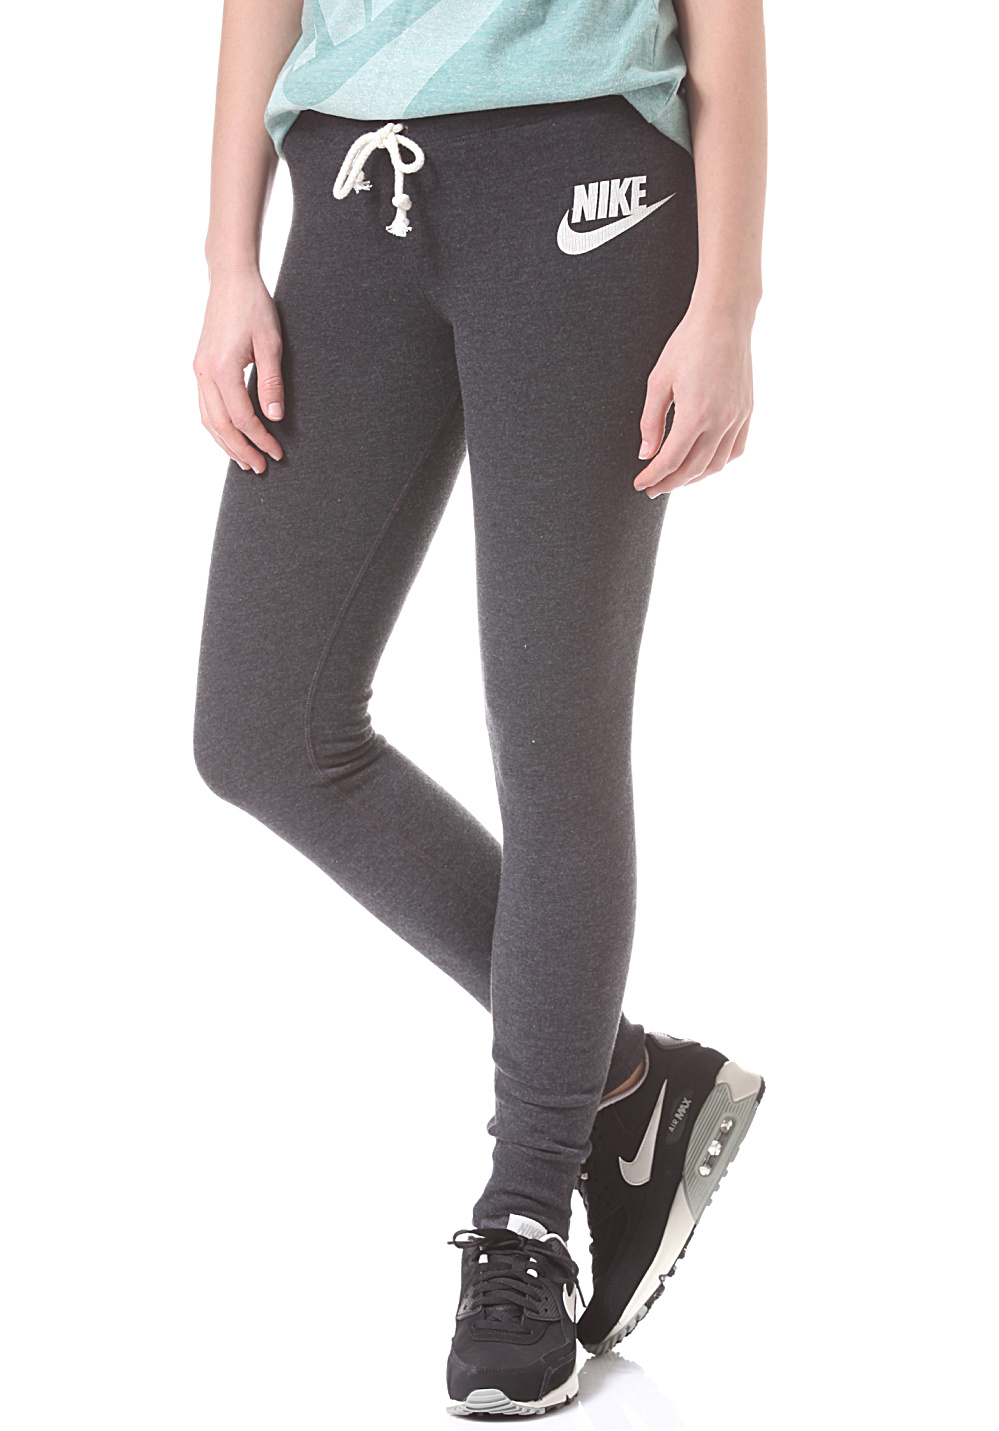 pantalon de jogging femme nike. Black Bedroom Furniture Sets. Home Design Ideas